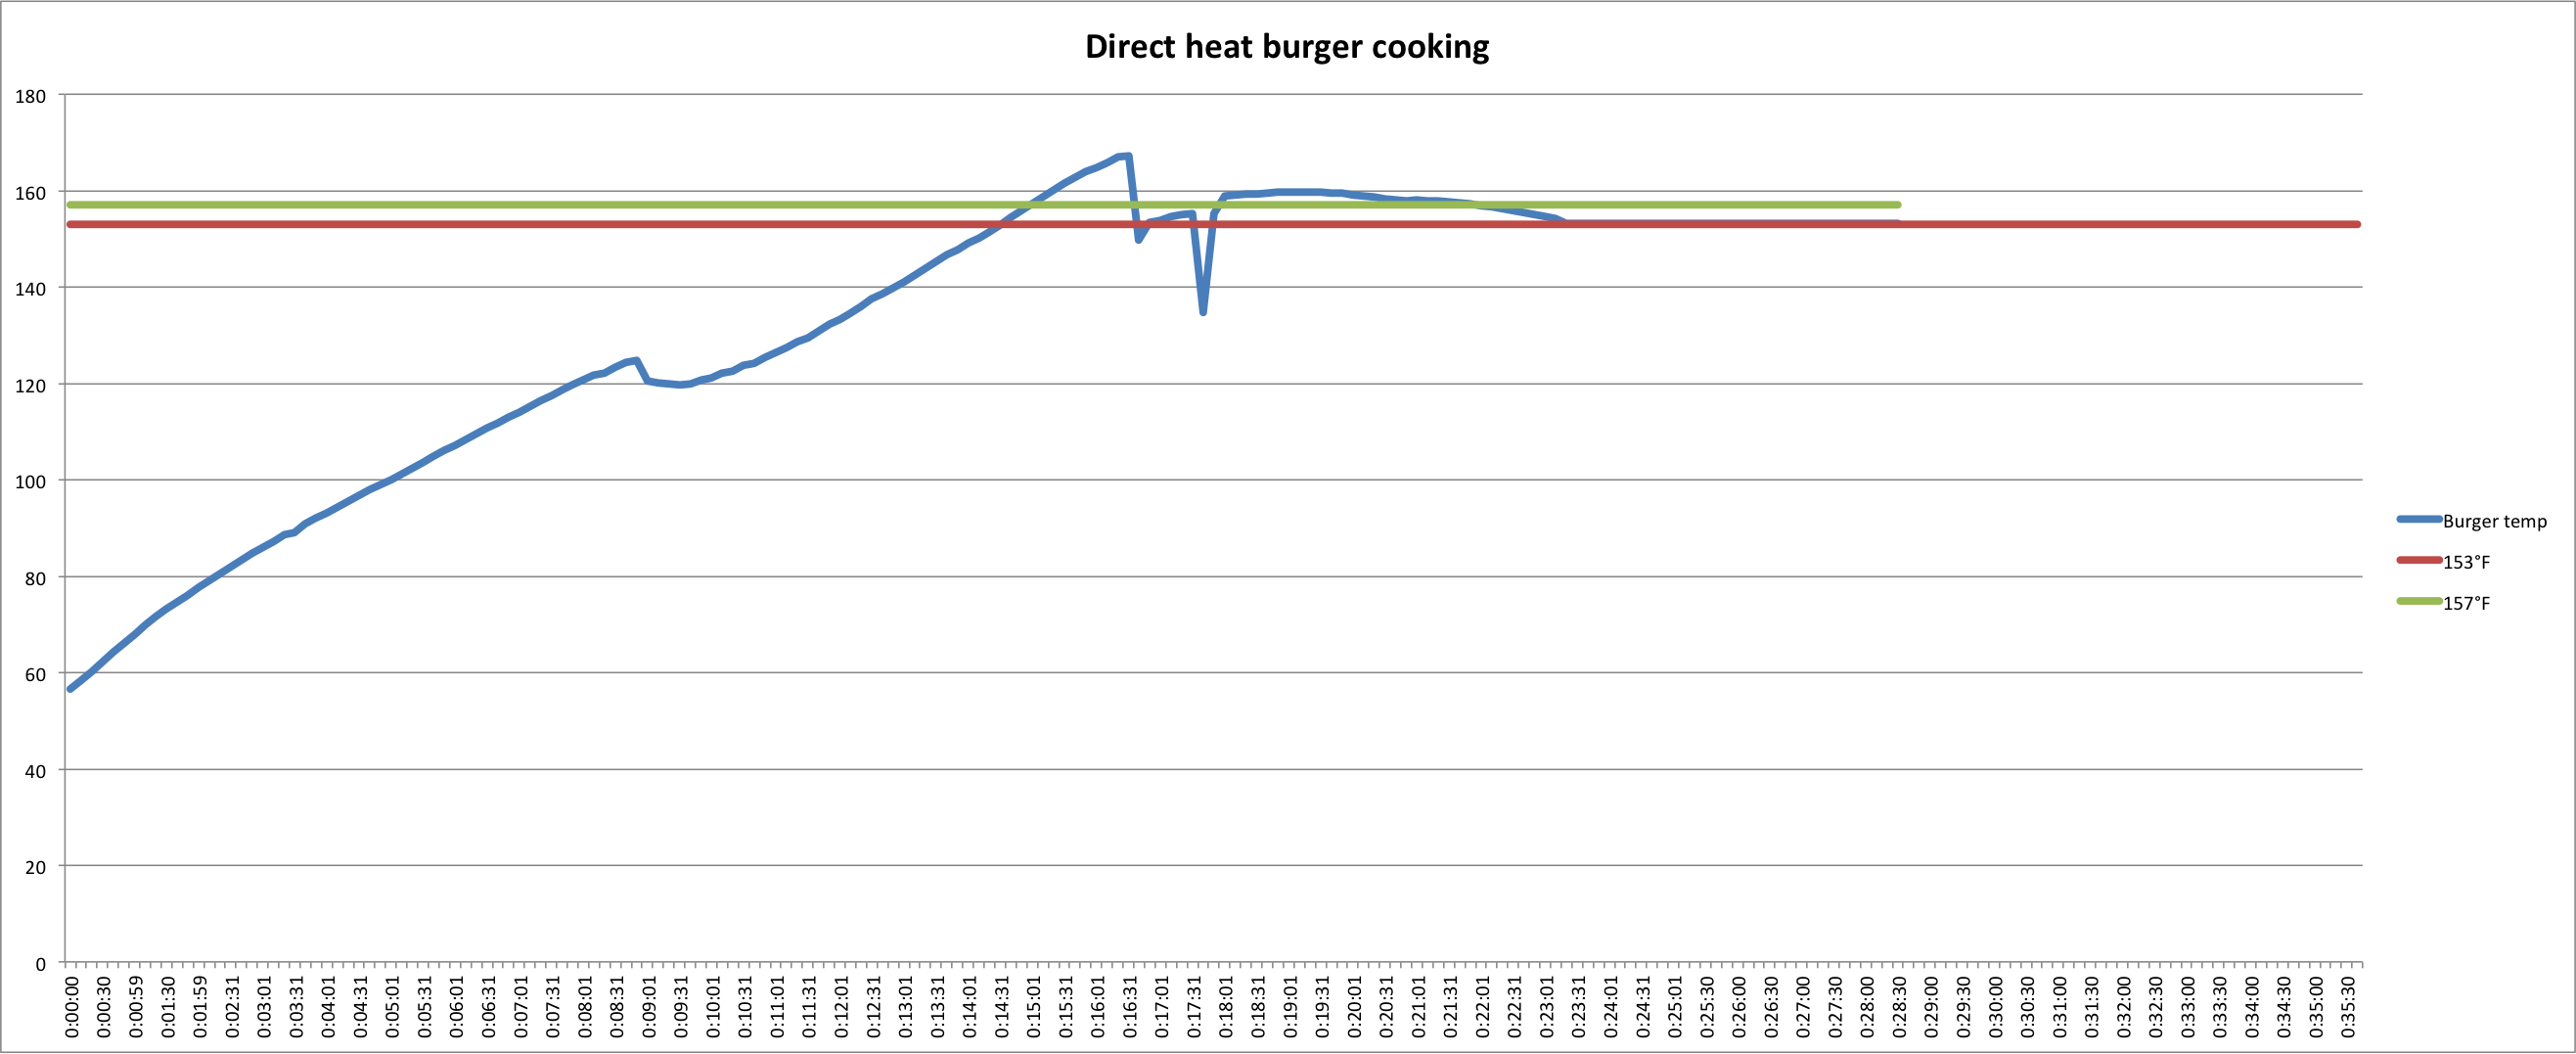 picture about Meat Cooking Temperatures Chart Printable named Grilling Hamburgers: A Climate Marketing consultant ThermoWorks